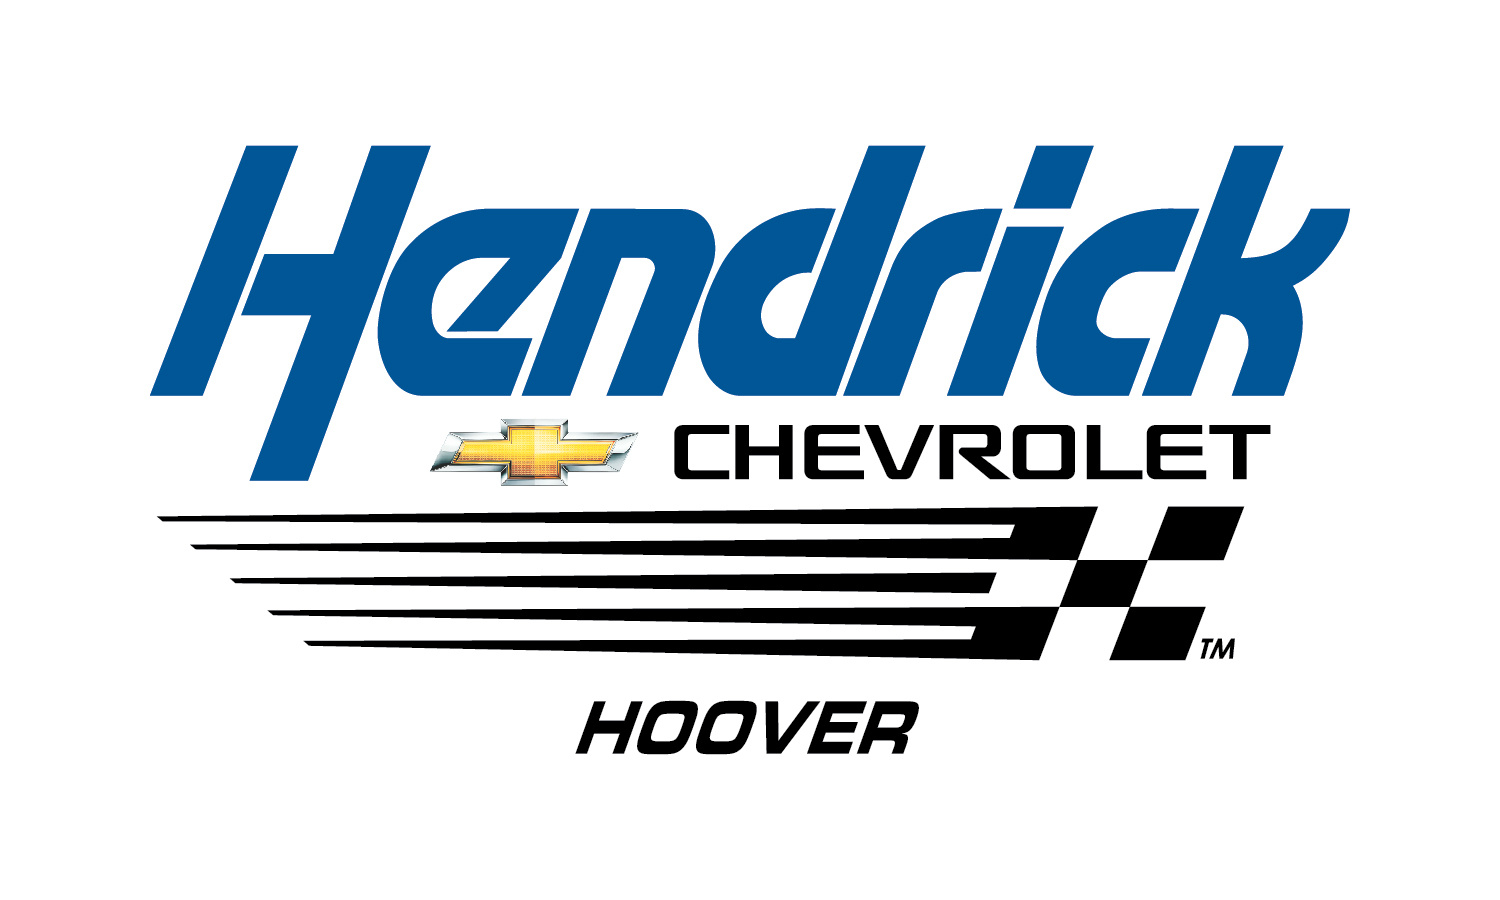 Hendrick Chevrolet Hoover Al >> Hendrick Chevrolet Hoover - Hoover, AL: Read Consumer reviews, Browse Used and New Cars for Sale